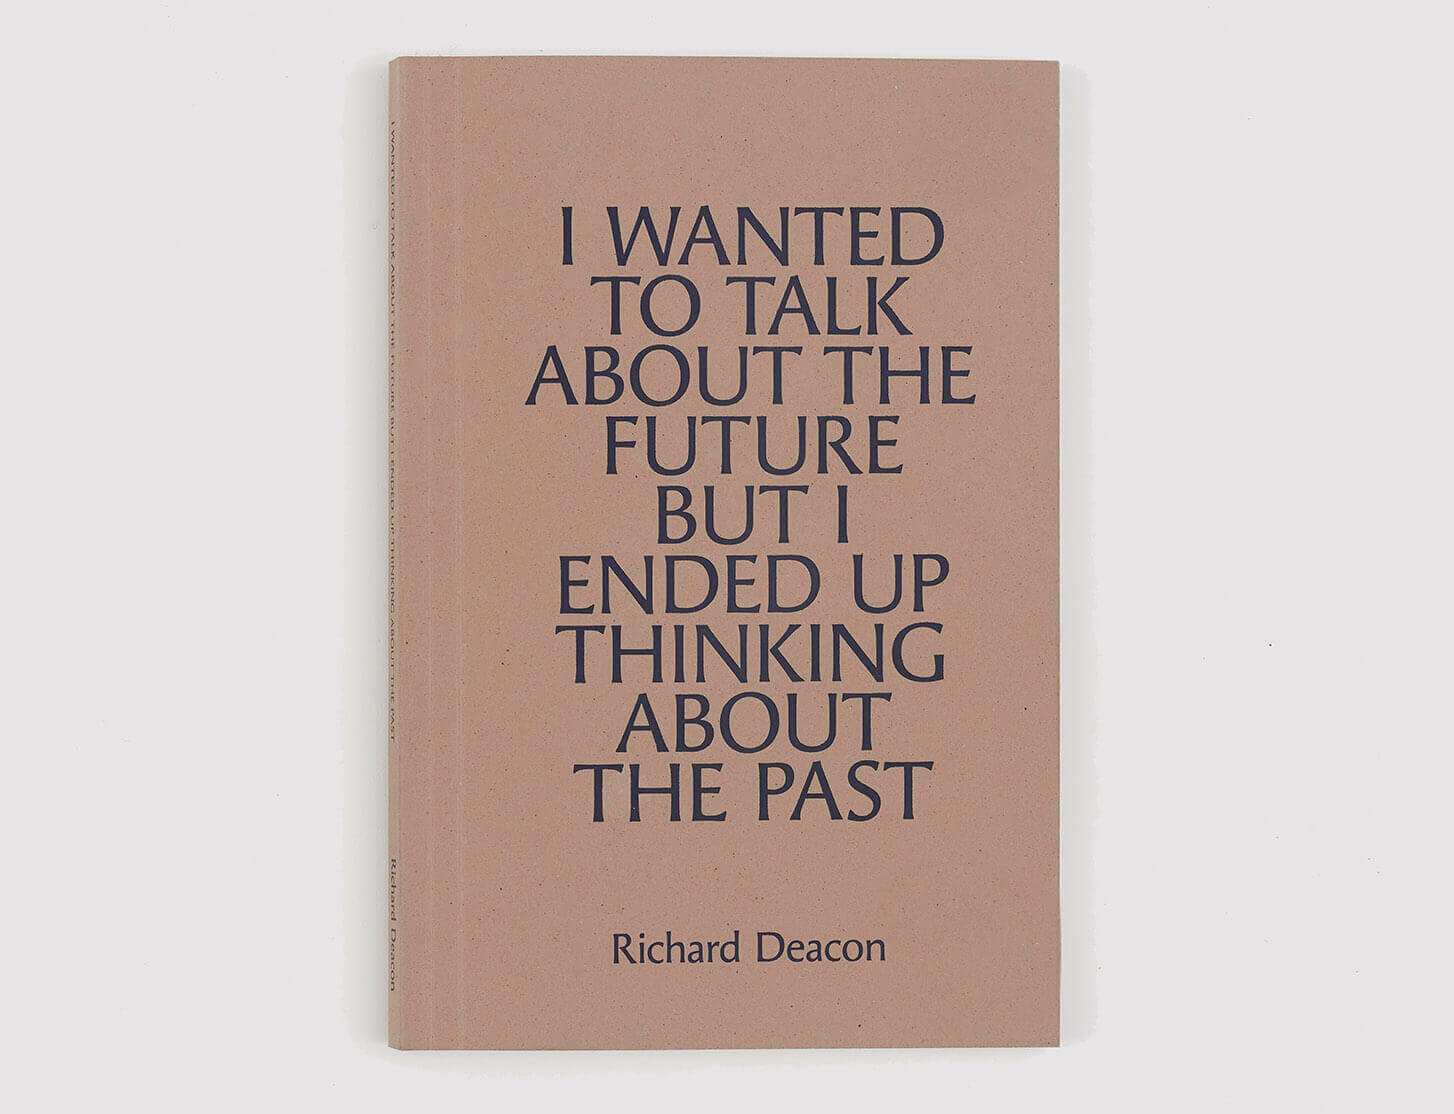 New book by Richard Deacon now available to purchase